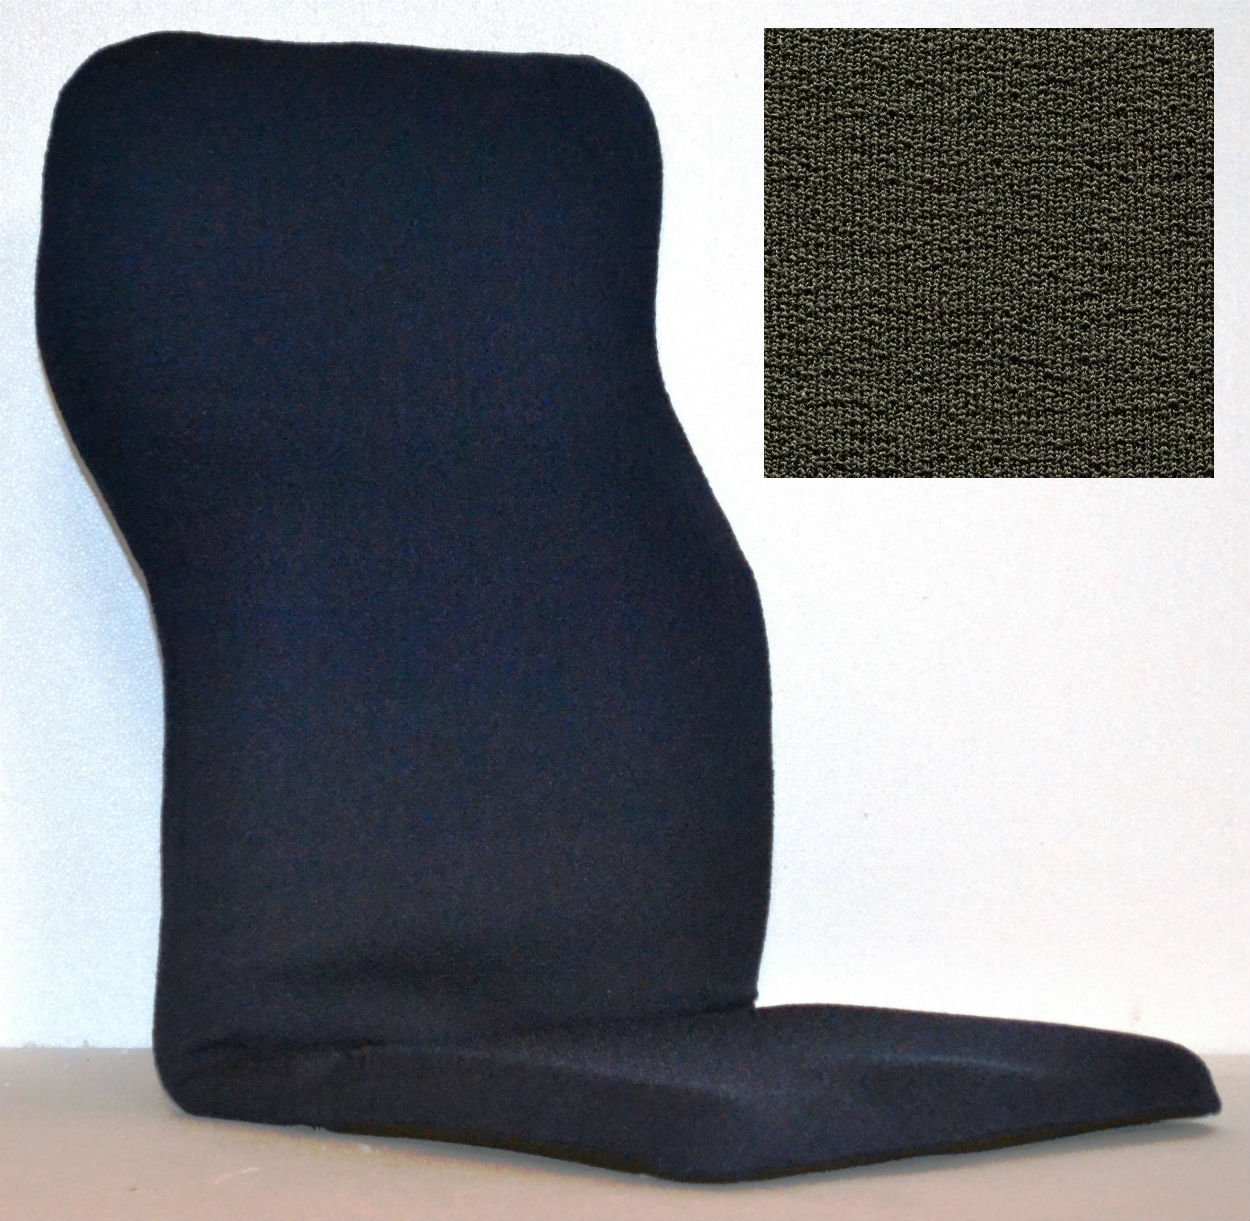 McCarty's Sacro Ease Office Chair Makeover Back Lumbar Support BASIL